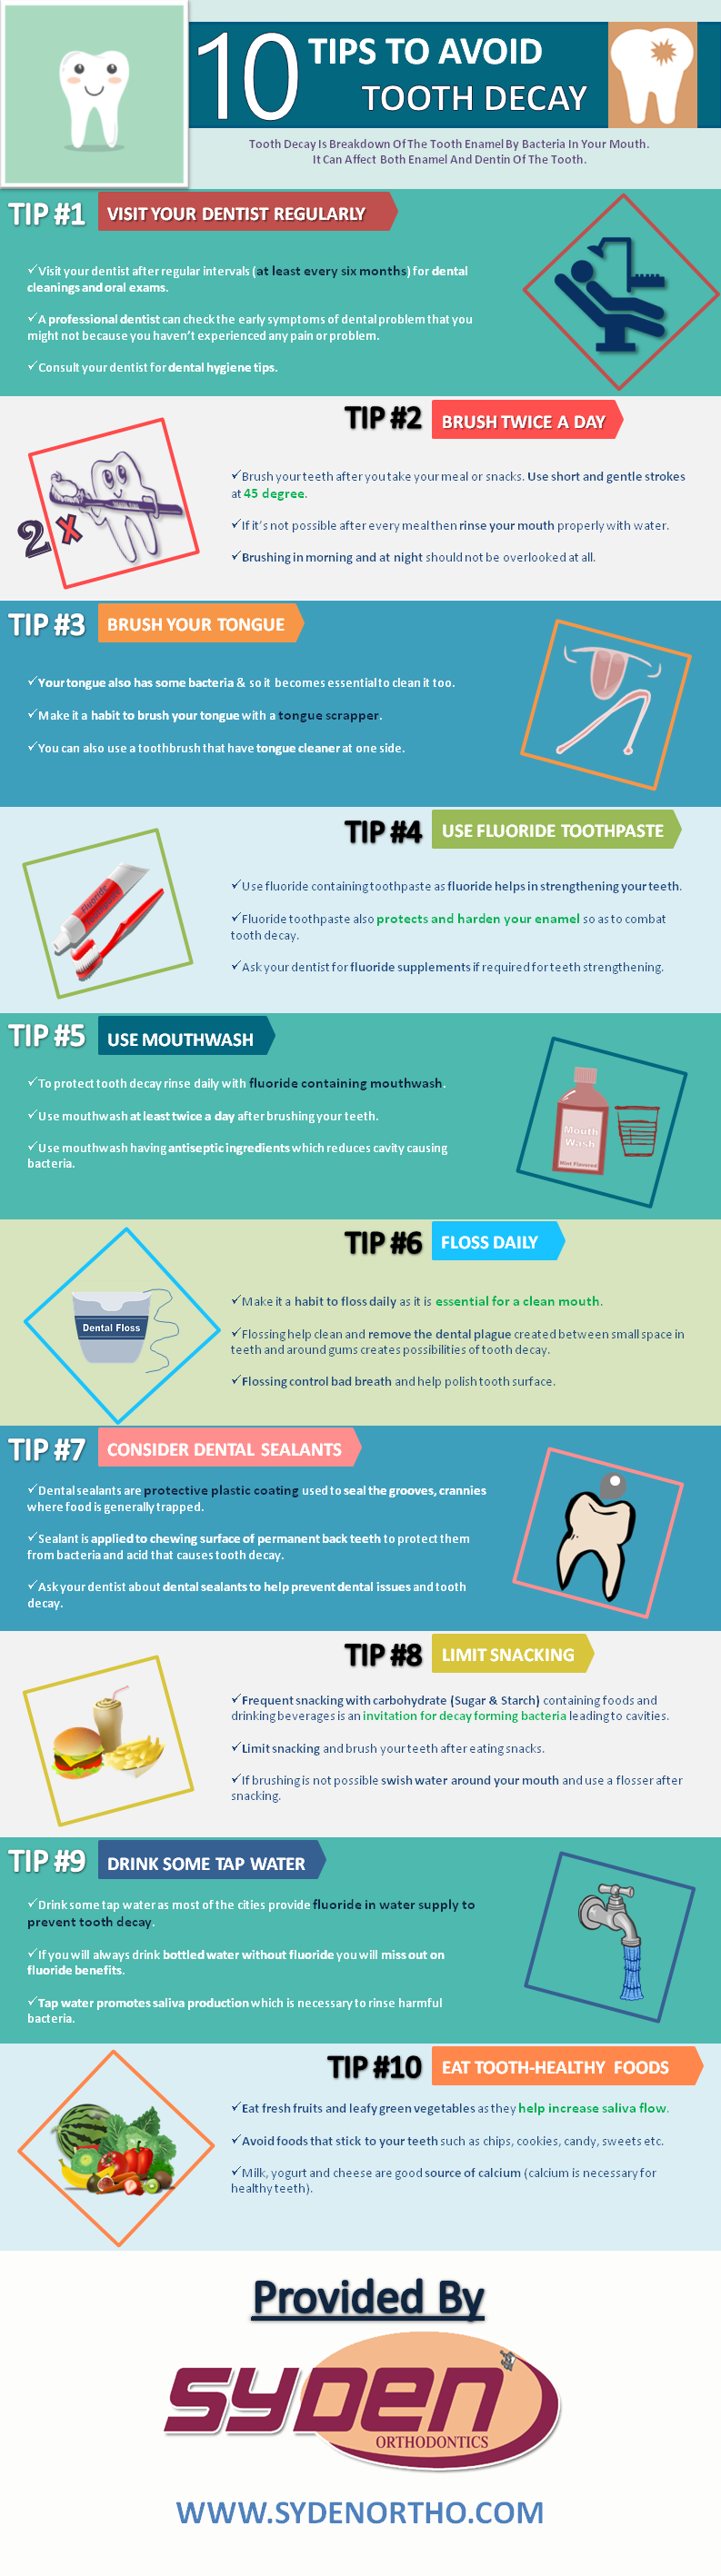 tips to avoid dental decay infographic - Ten Tips to Prevent Tooth Decay